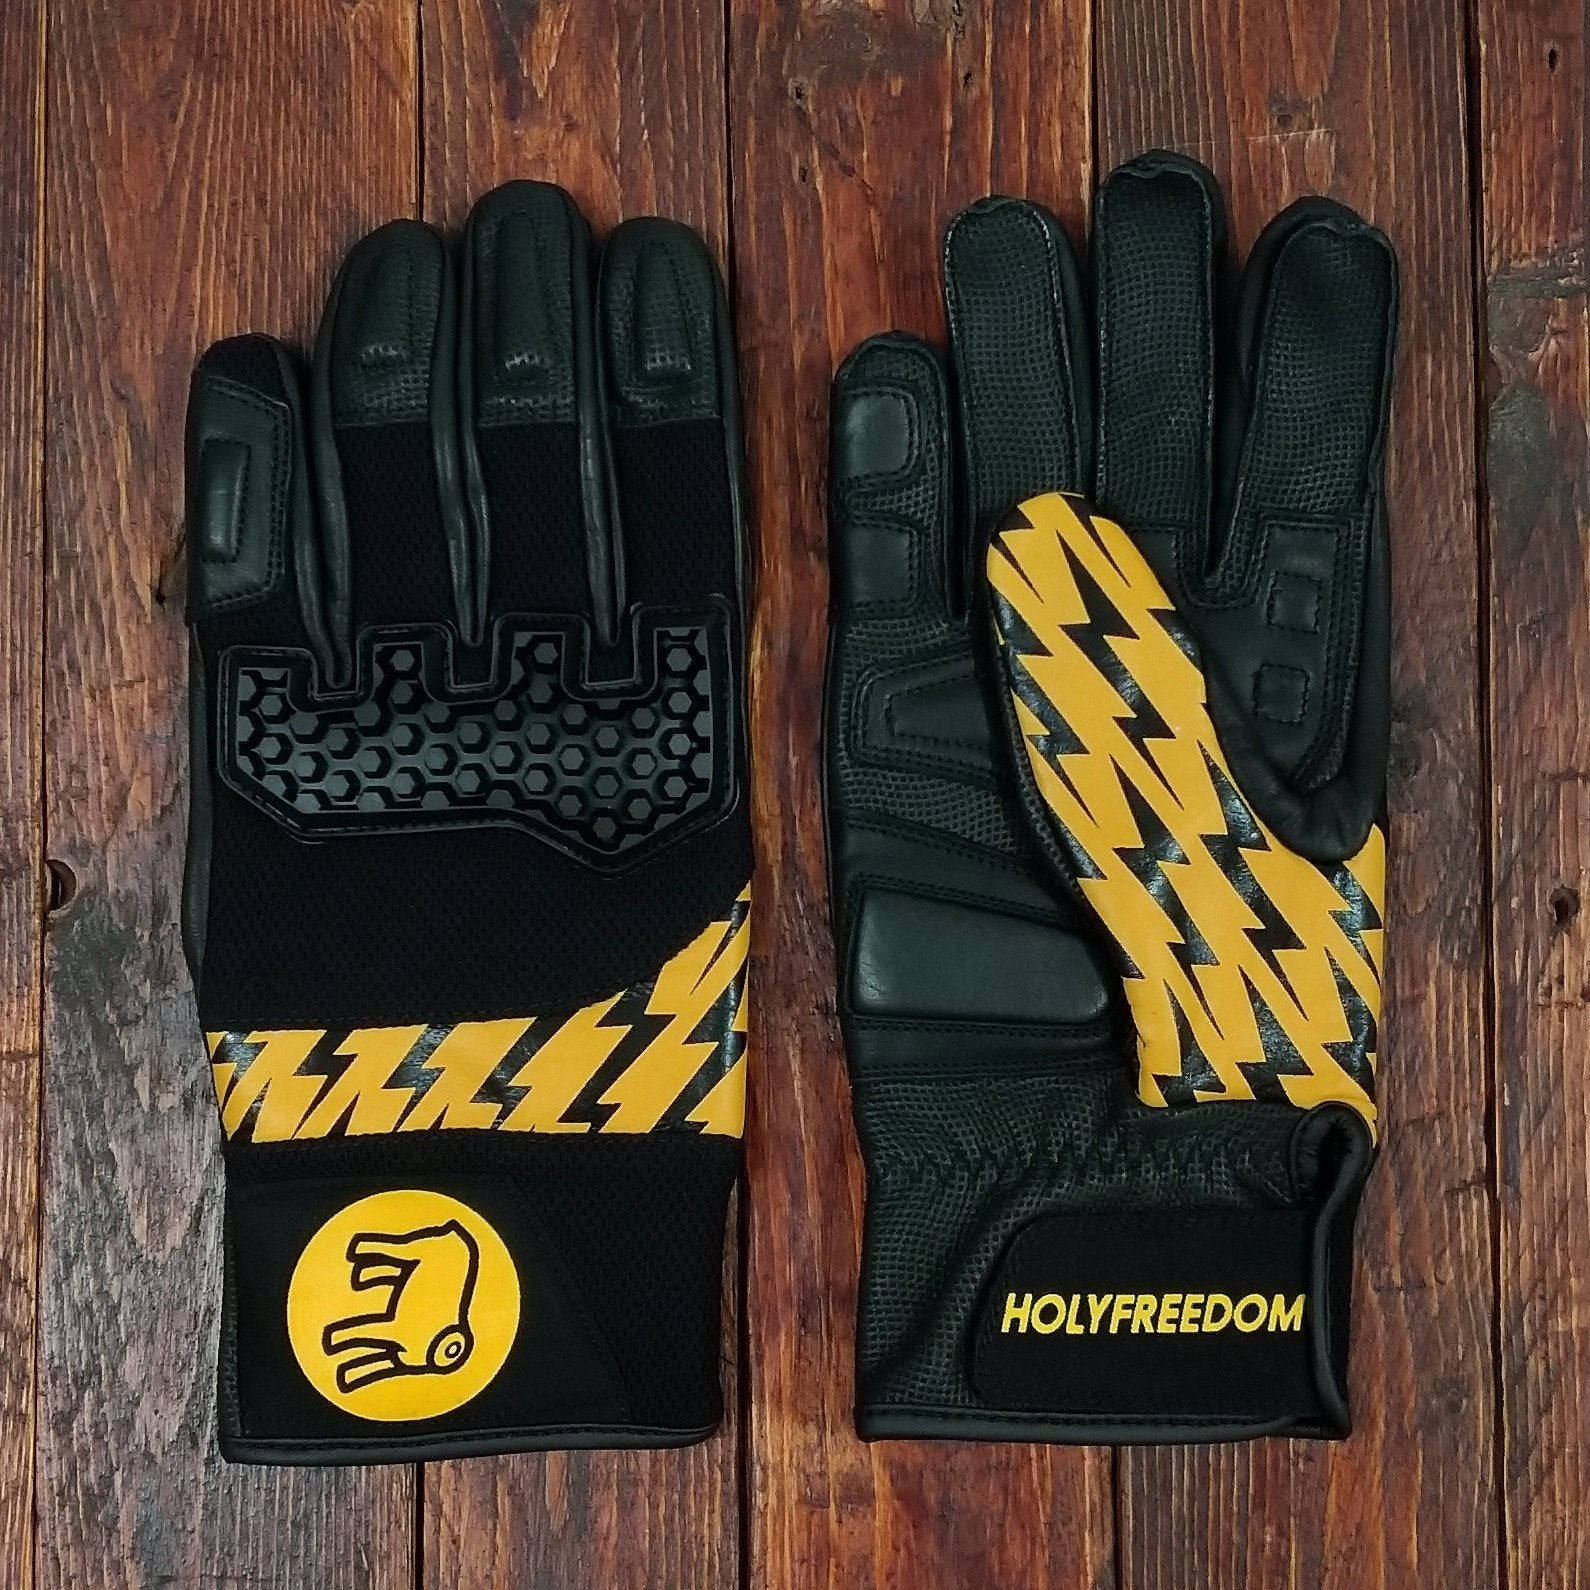 Holy Freedom - Holy Freedom Saetta Gloves - Gloves - Salt Flats Clothing